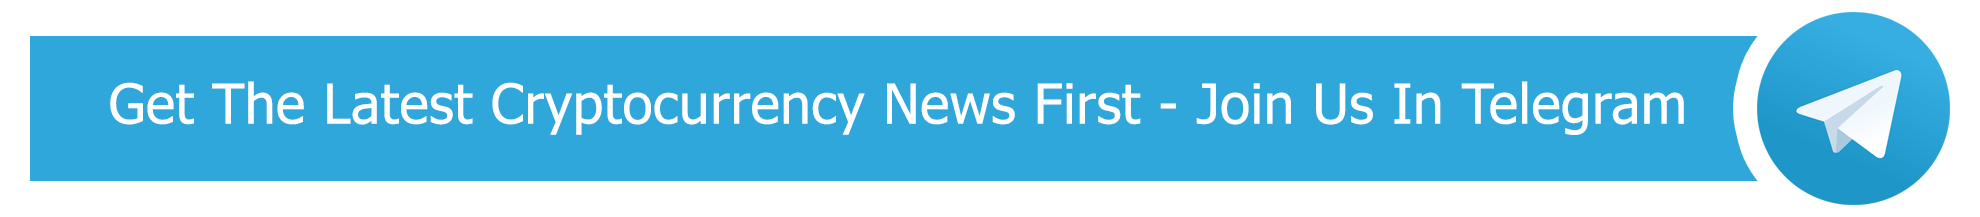 Get The Latest Blockchain News First - Join Us In Telegram